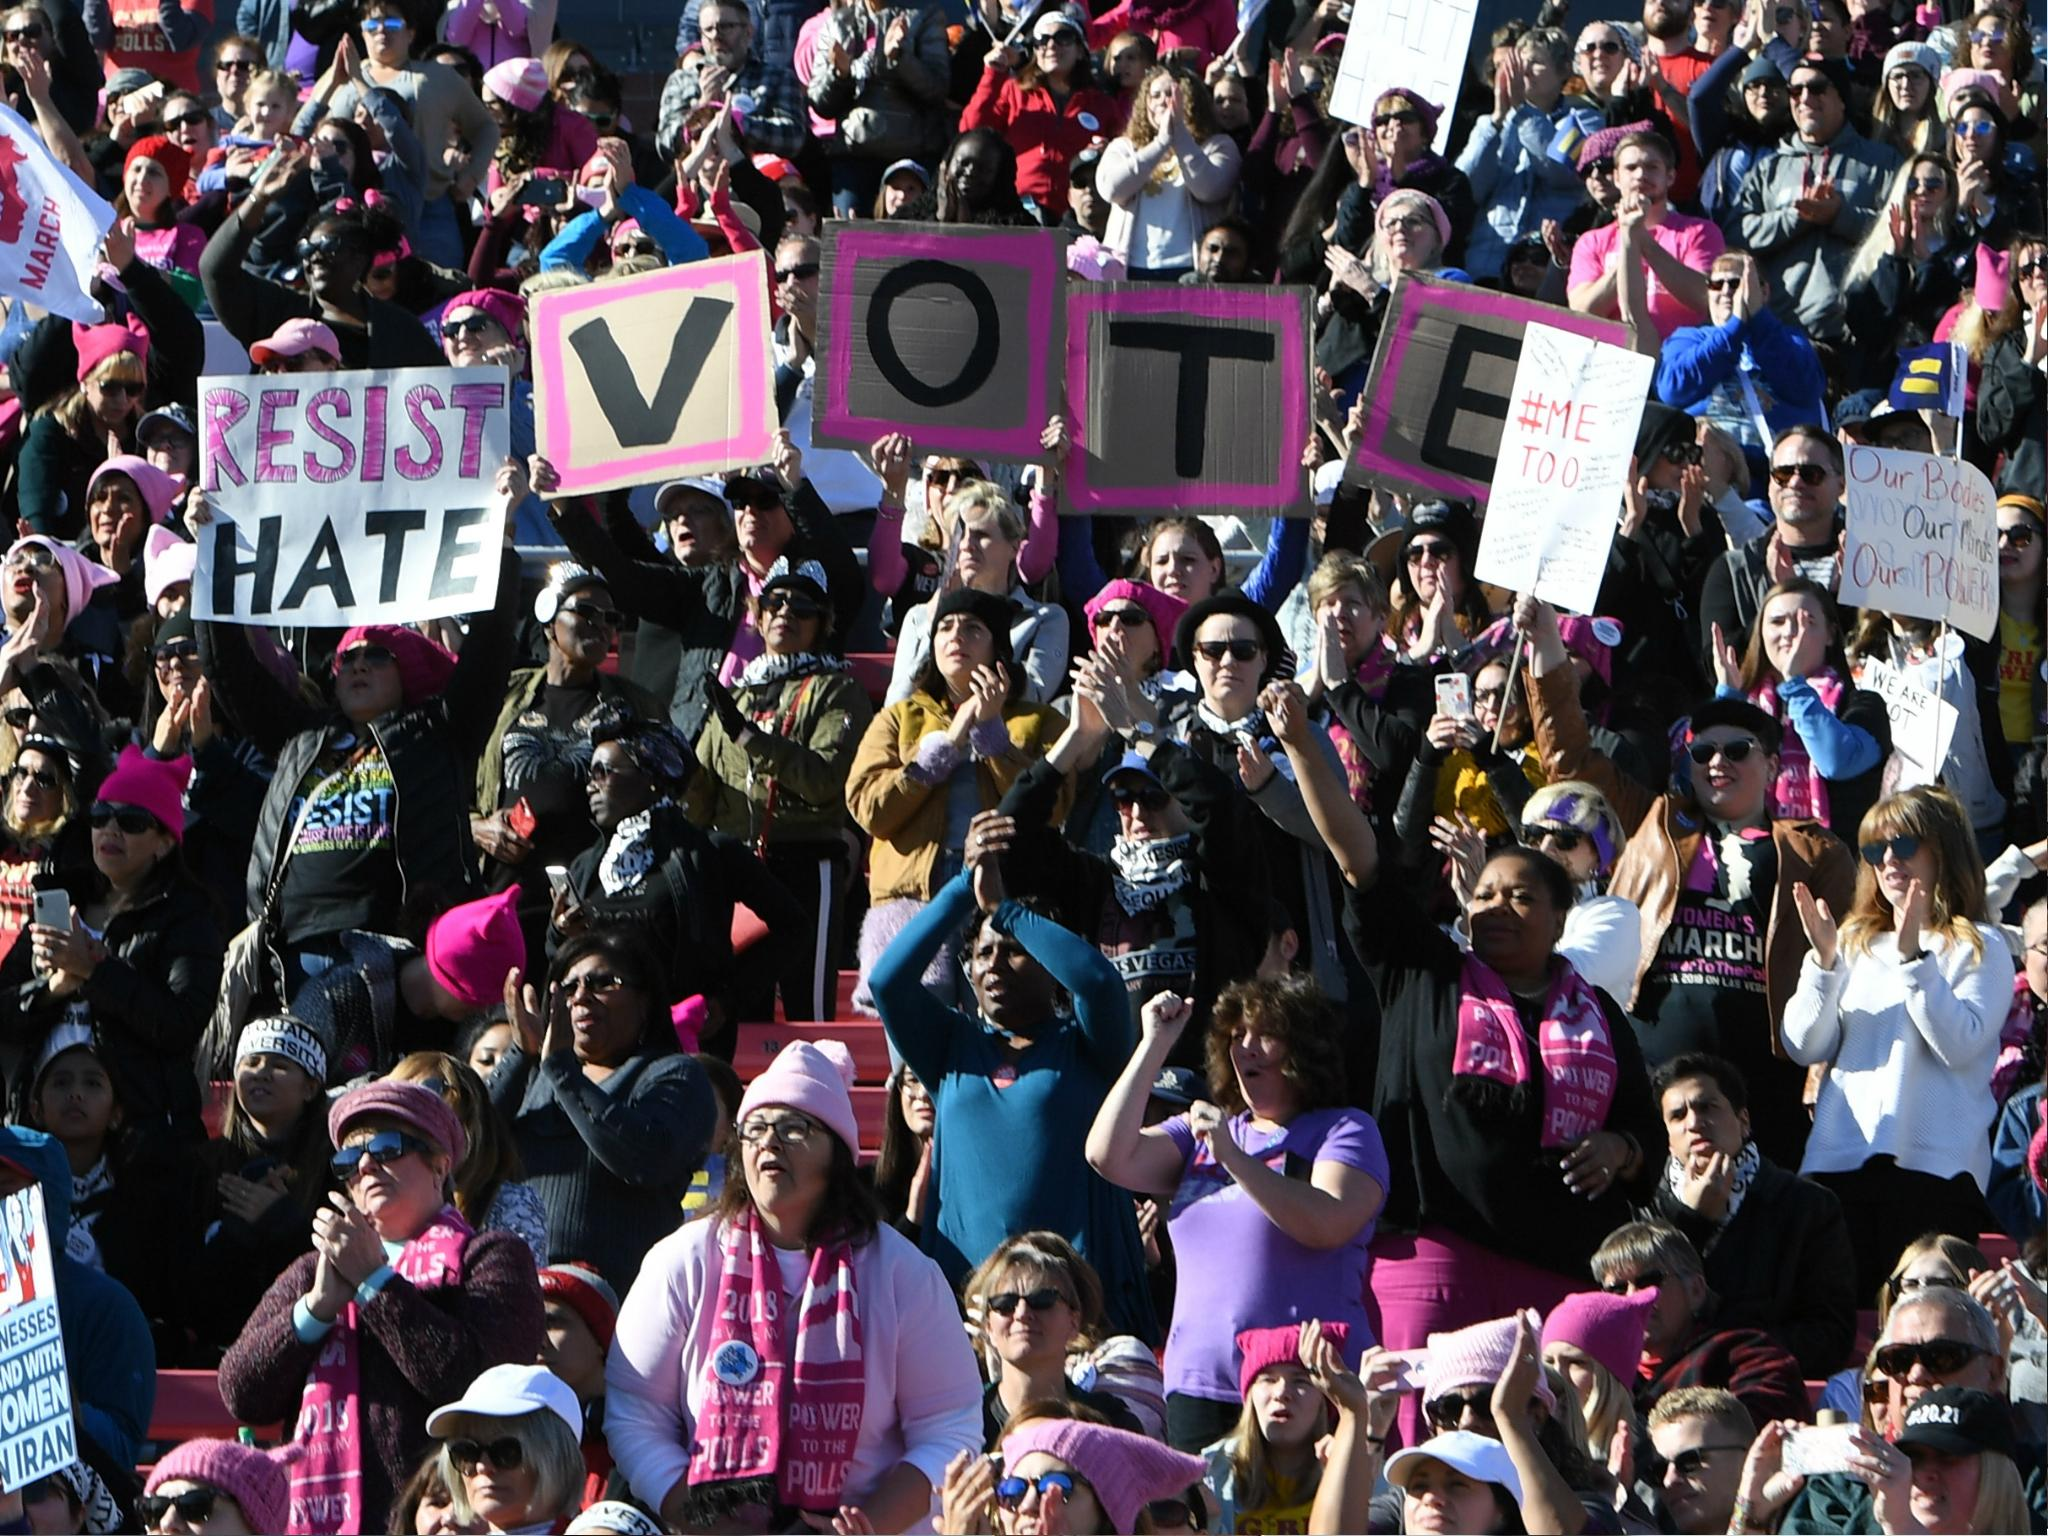 Twice as many women are running for office in 2018 than 2016, analysis shows